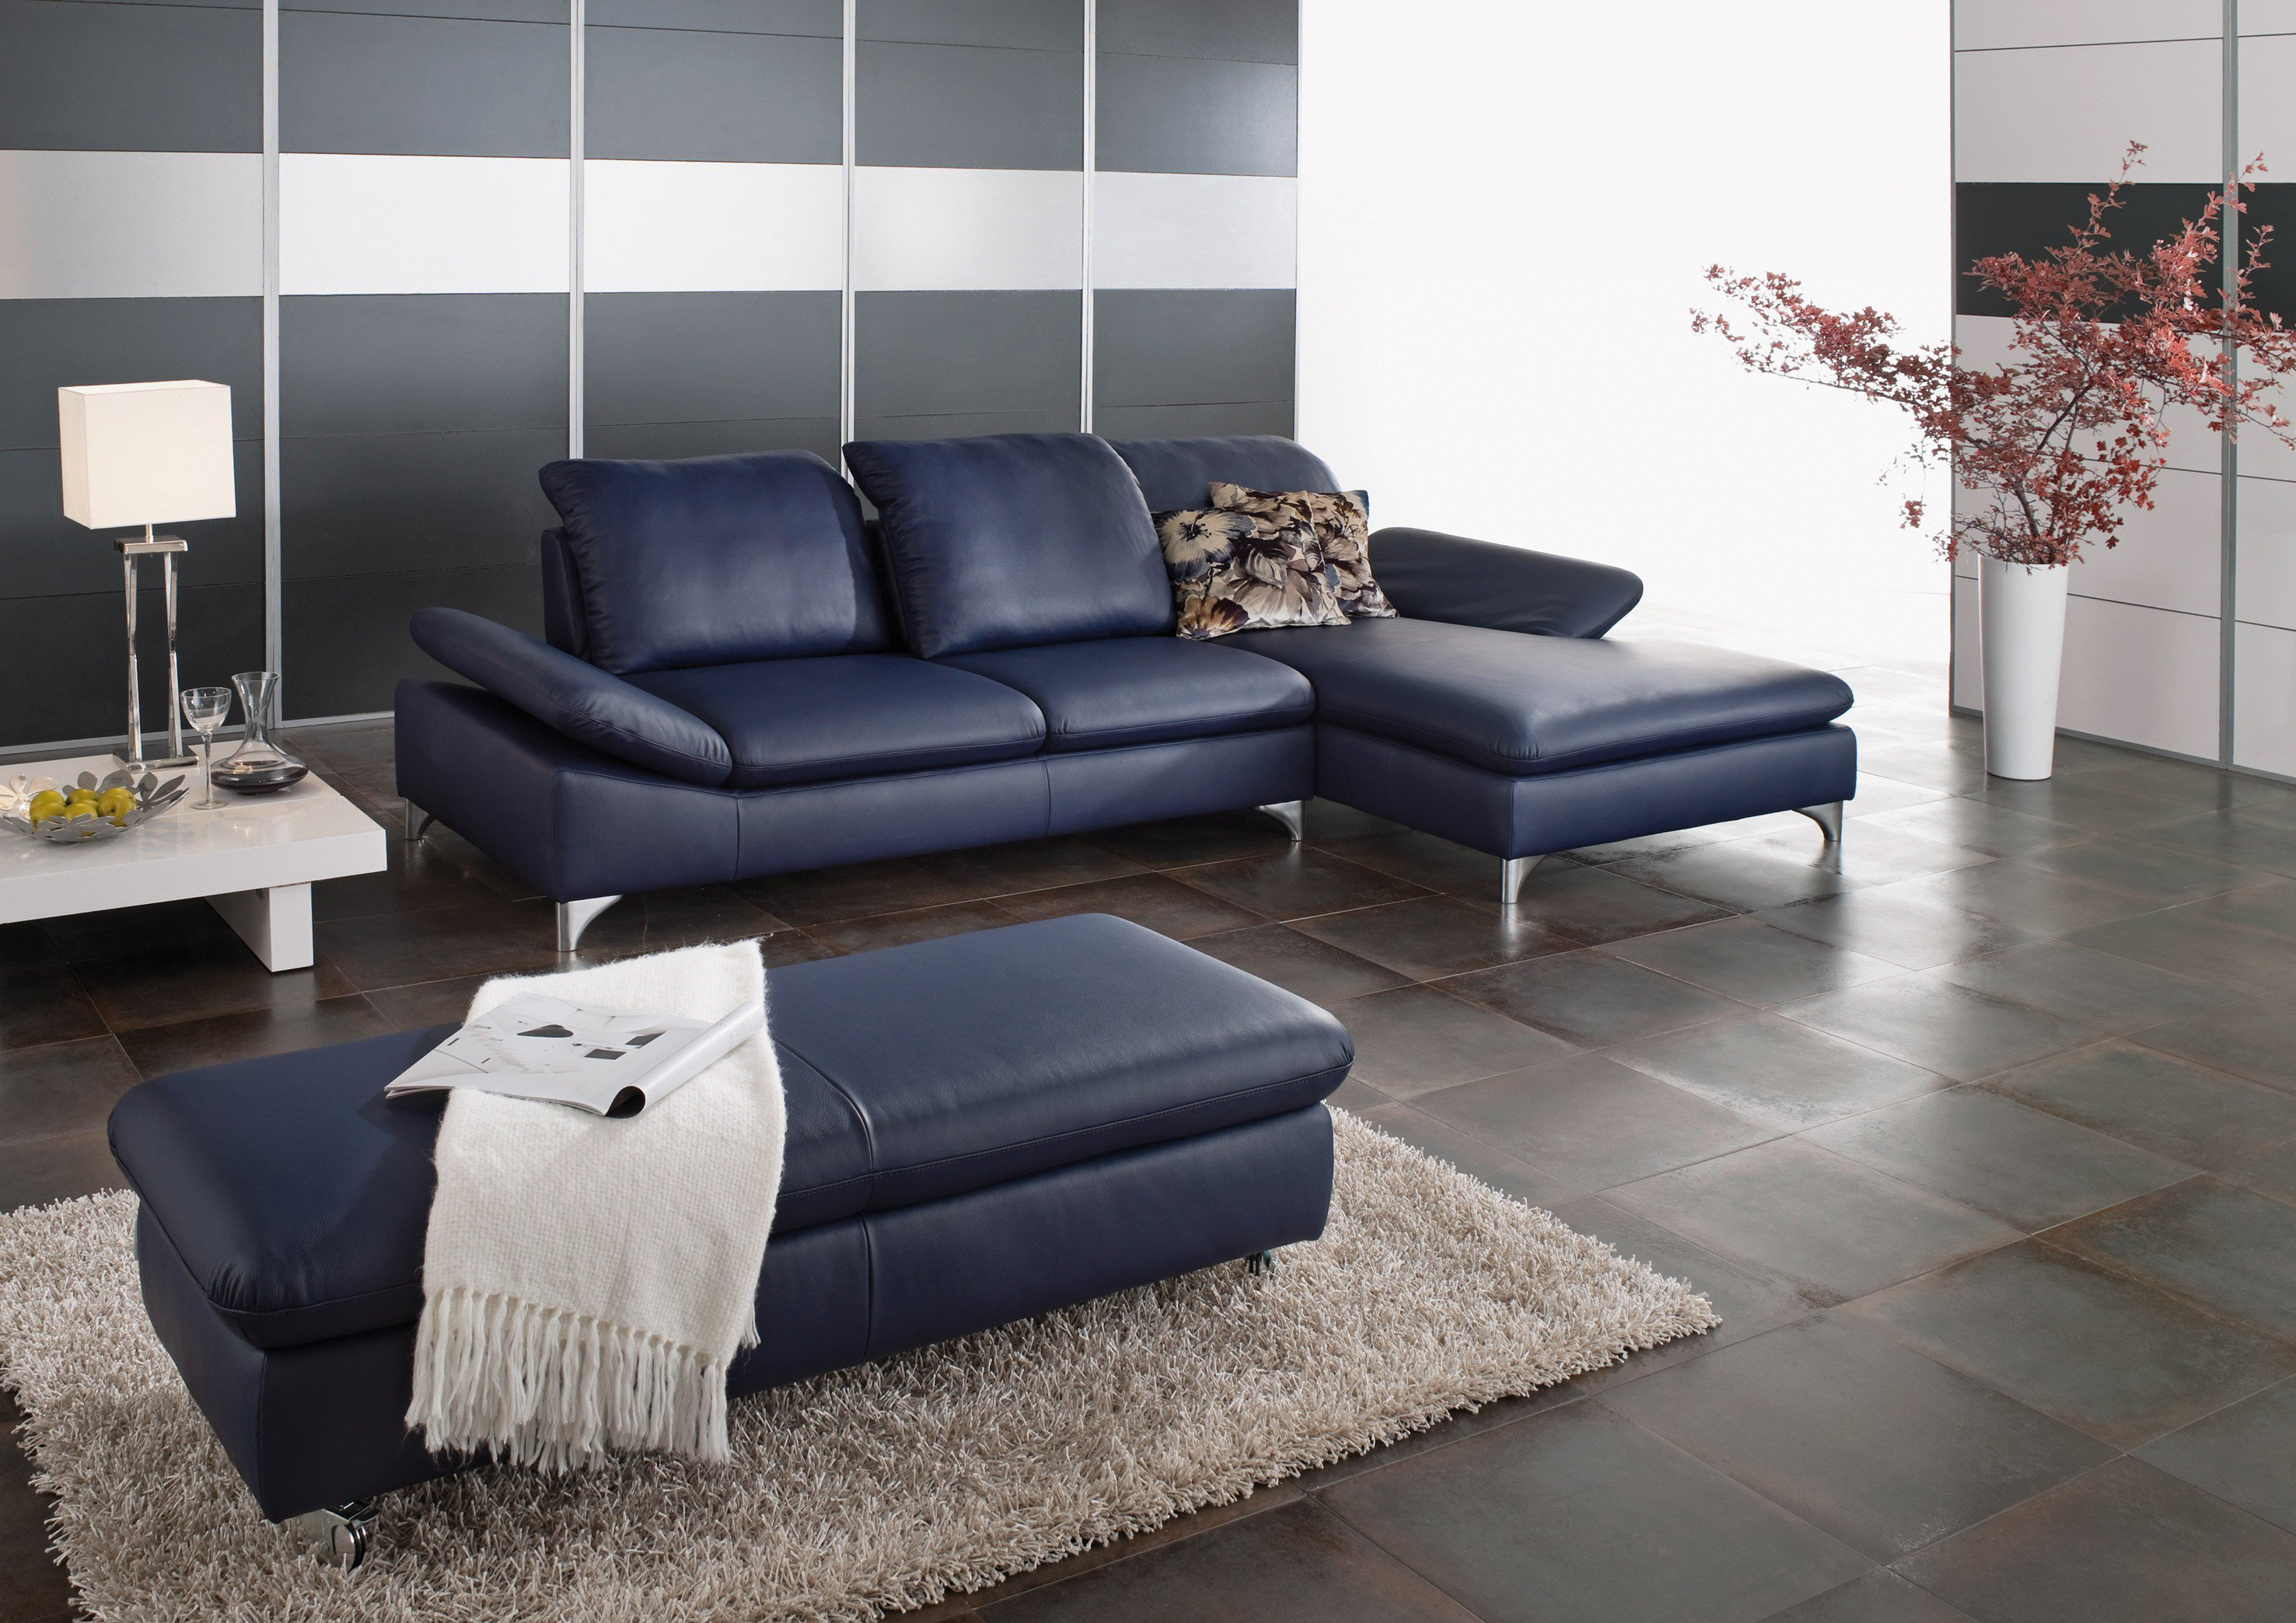 willi schillig 15270 enjoy ecksofa in blau m bel letz ihr online shop. Black Bedroom Furniture Sets. Home Design Ideas